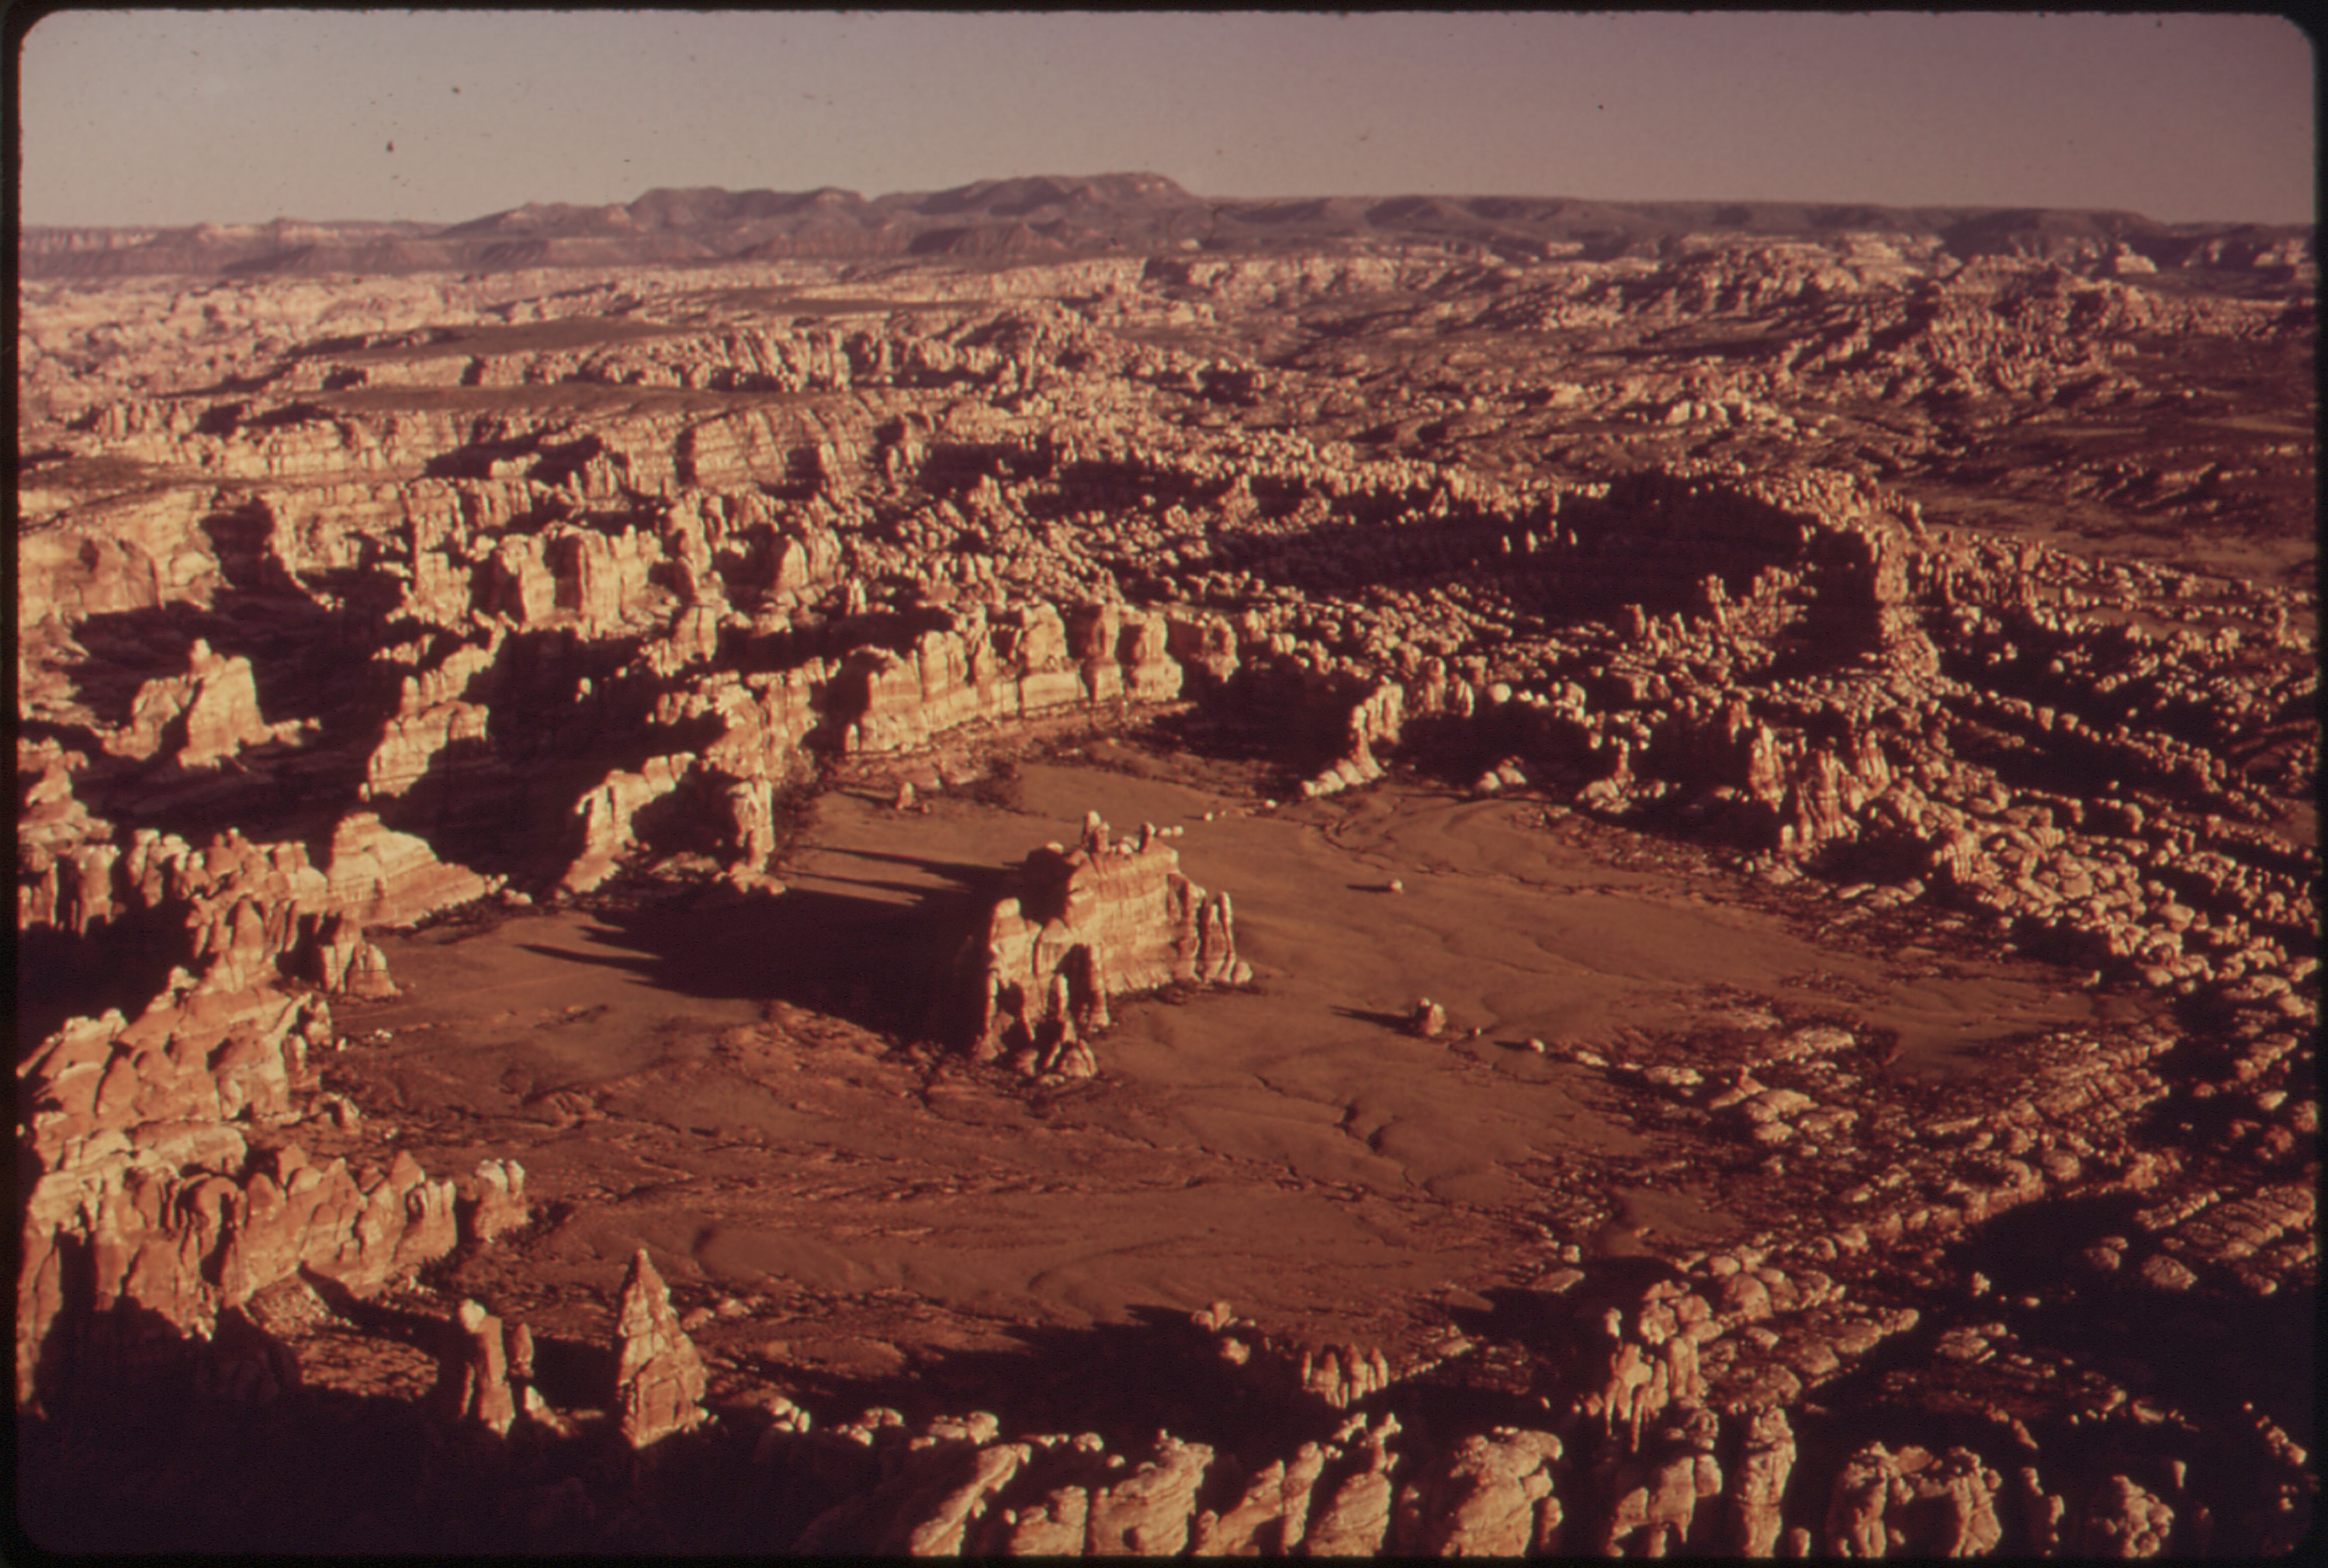 File:CHESLER PARK IN THE NEEDLES AREA, ONE OF THE MOST FAMOUS PARTS OF THE CANYONLANDS. ONCE A ...